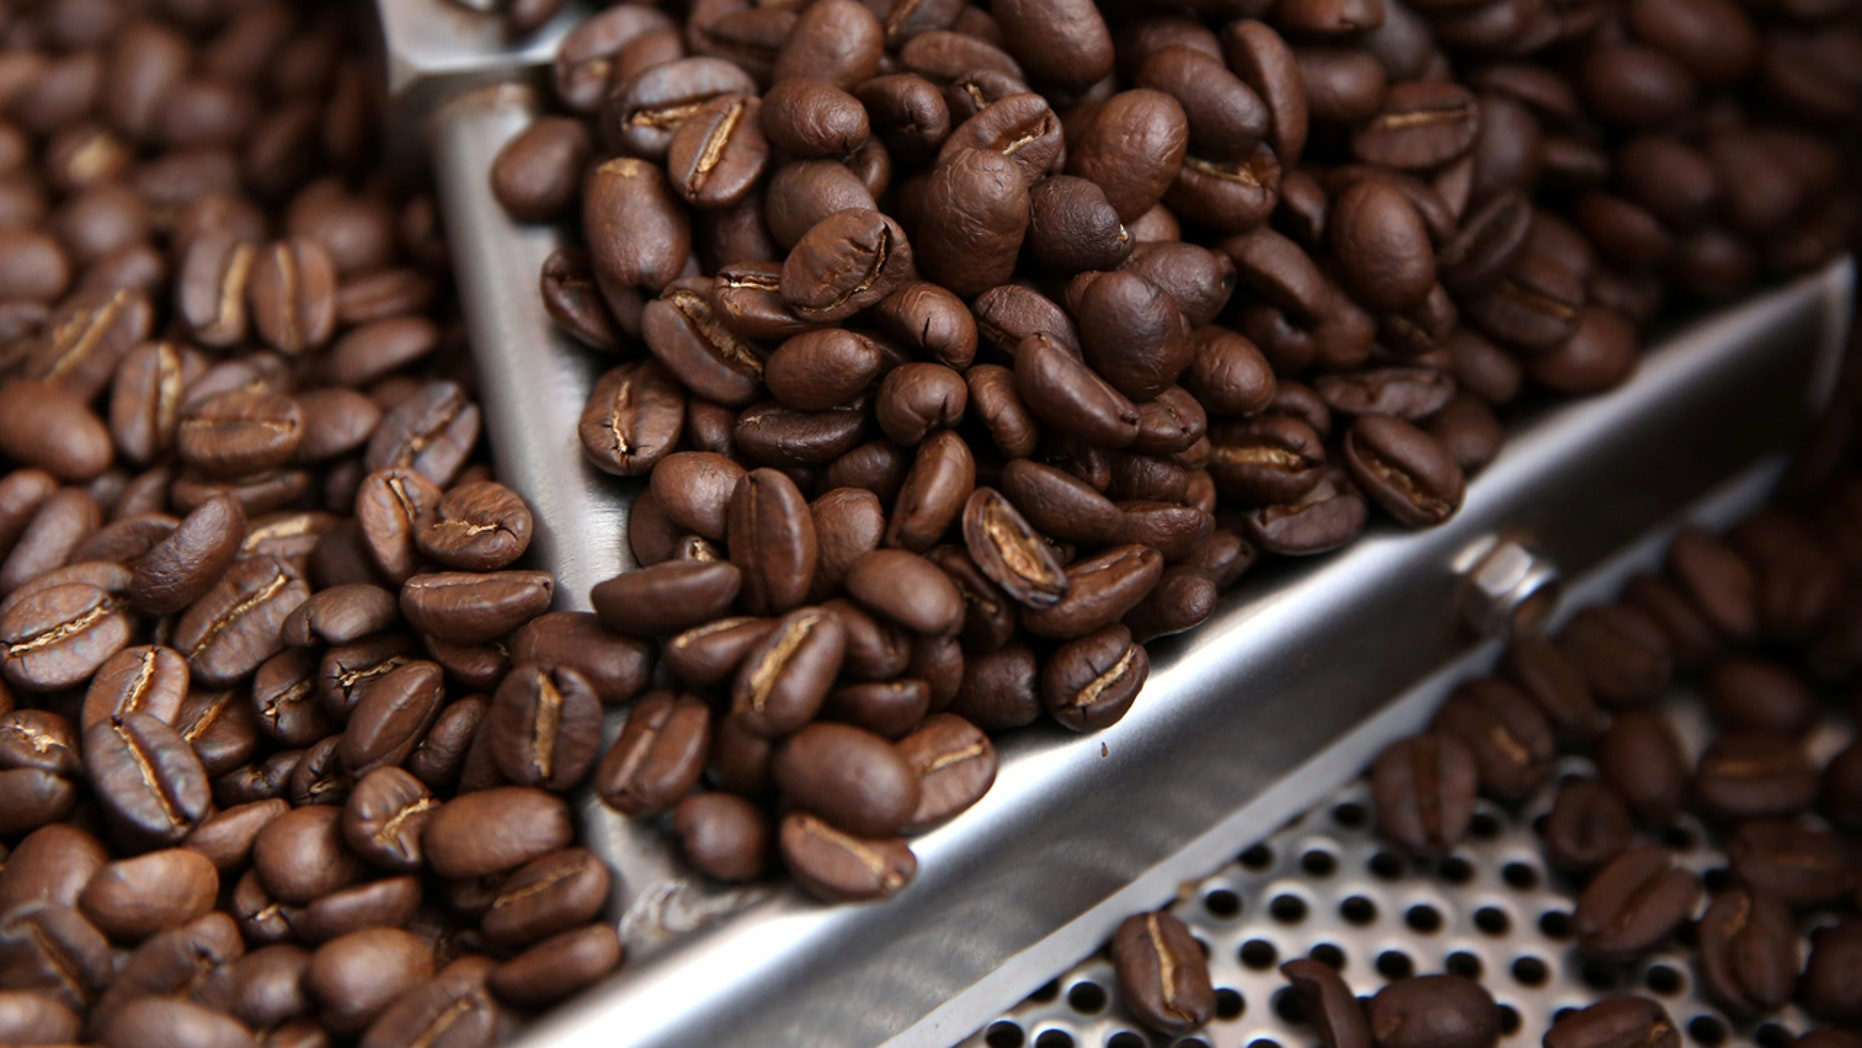 FILE: Coffee beans are seen in a roaster.